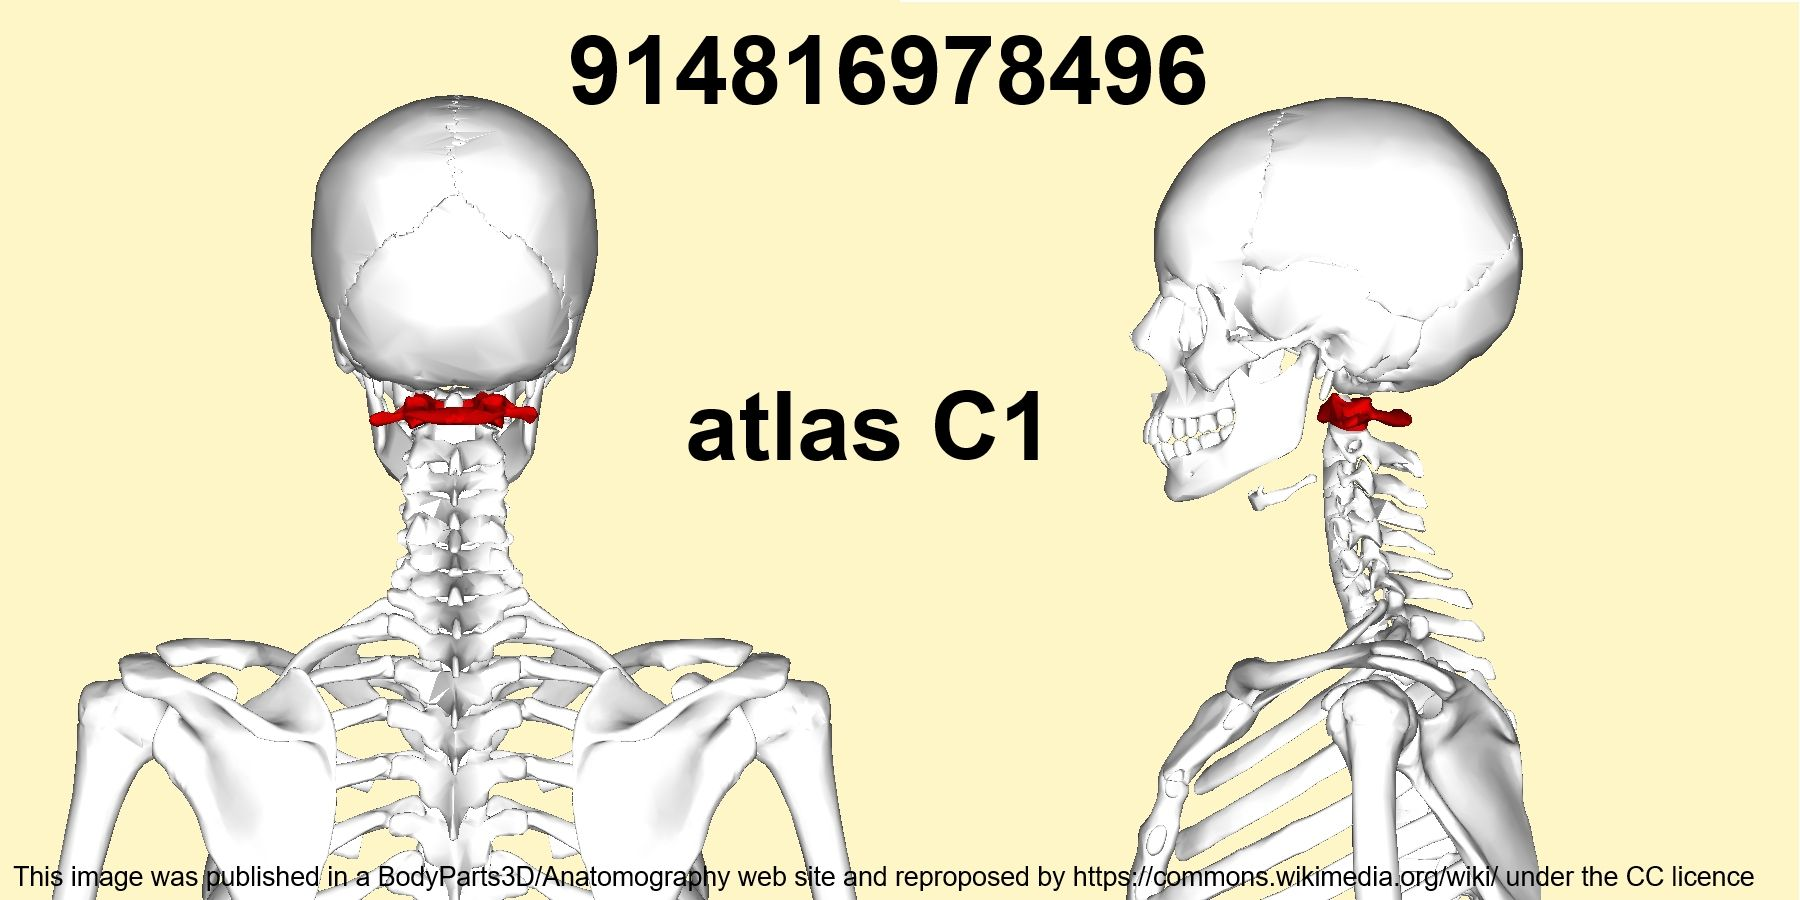 In Anatomy The Atlas C1 Is The Most Superior First Cervical